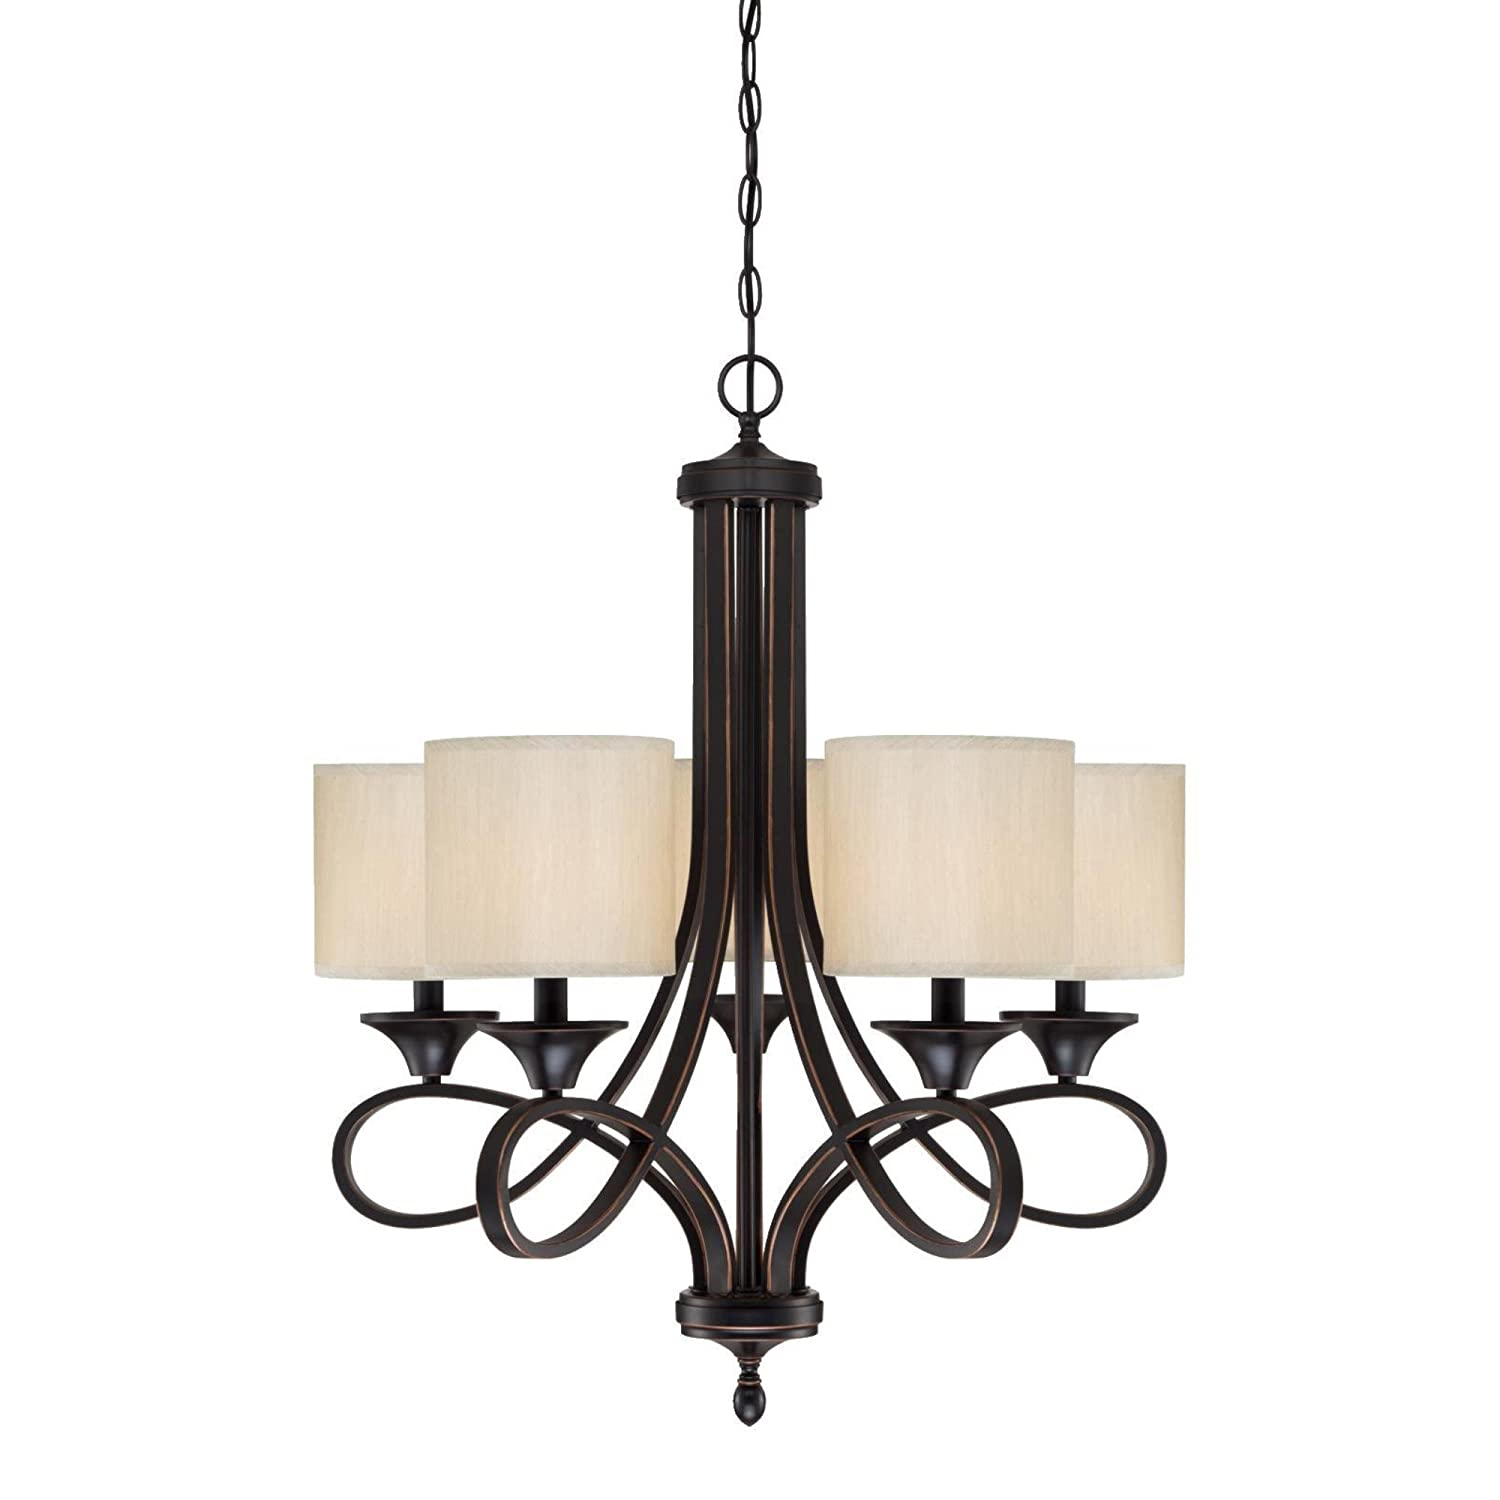 Westinghouse Lighting 6302900 Lenola Five-Light Indoor Chandelier, Amber Bronze Finish with Beige Fabric Shades